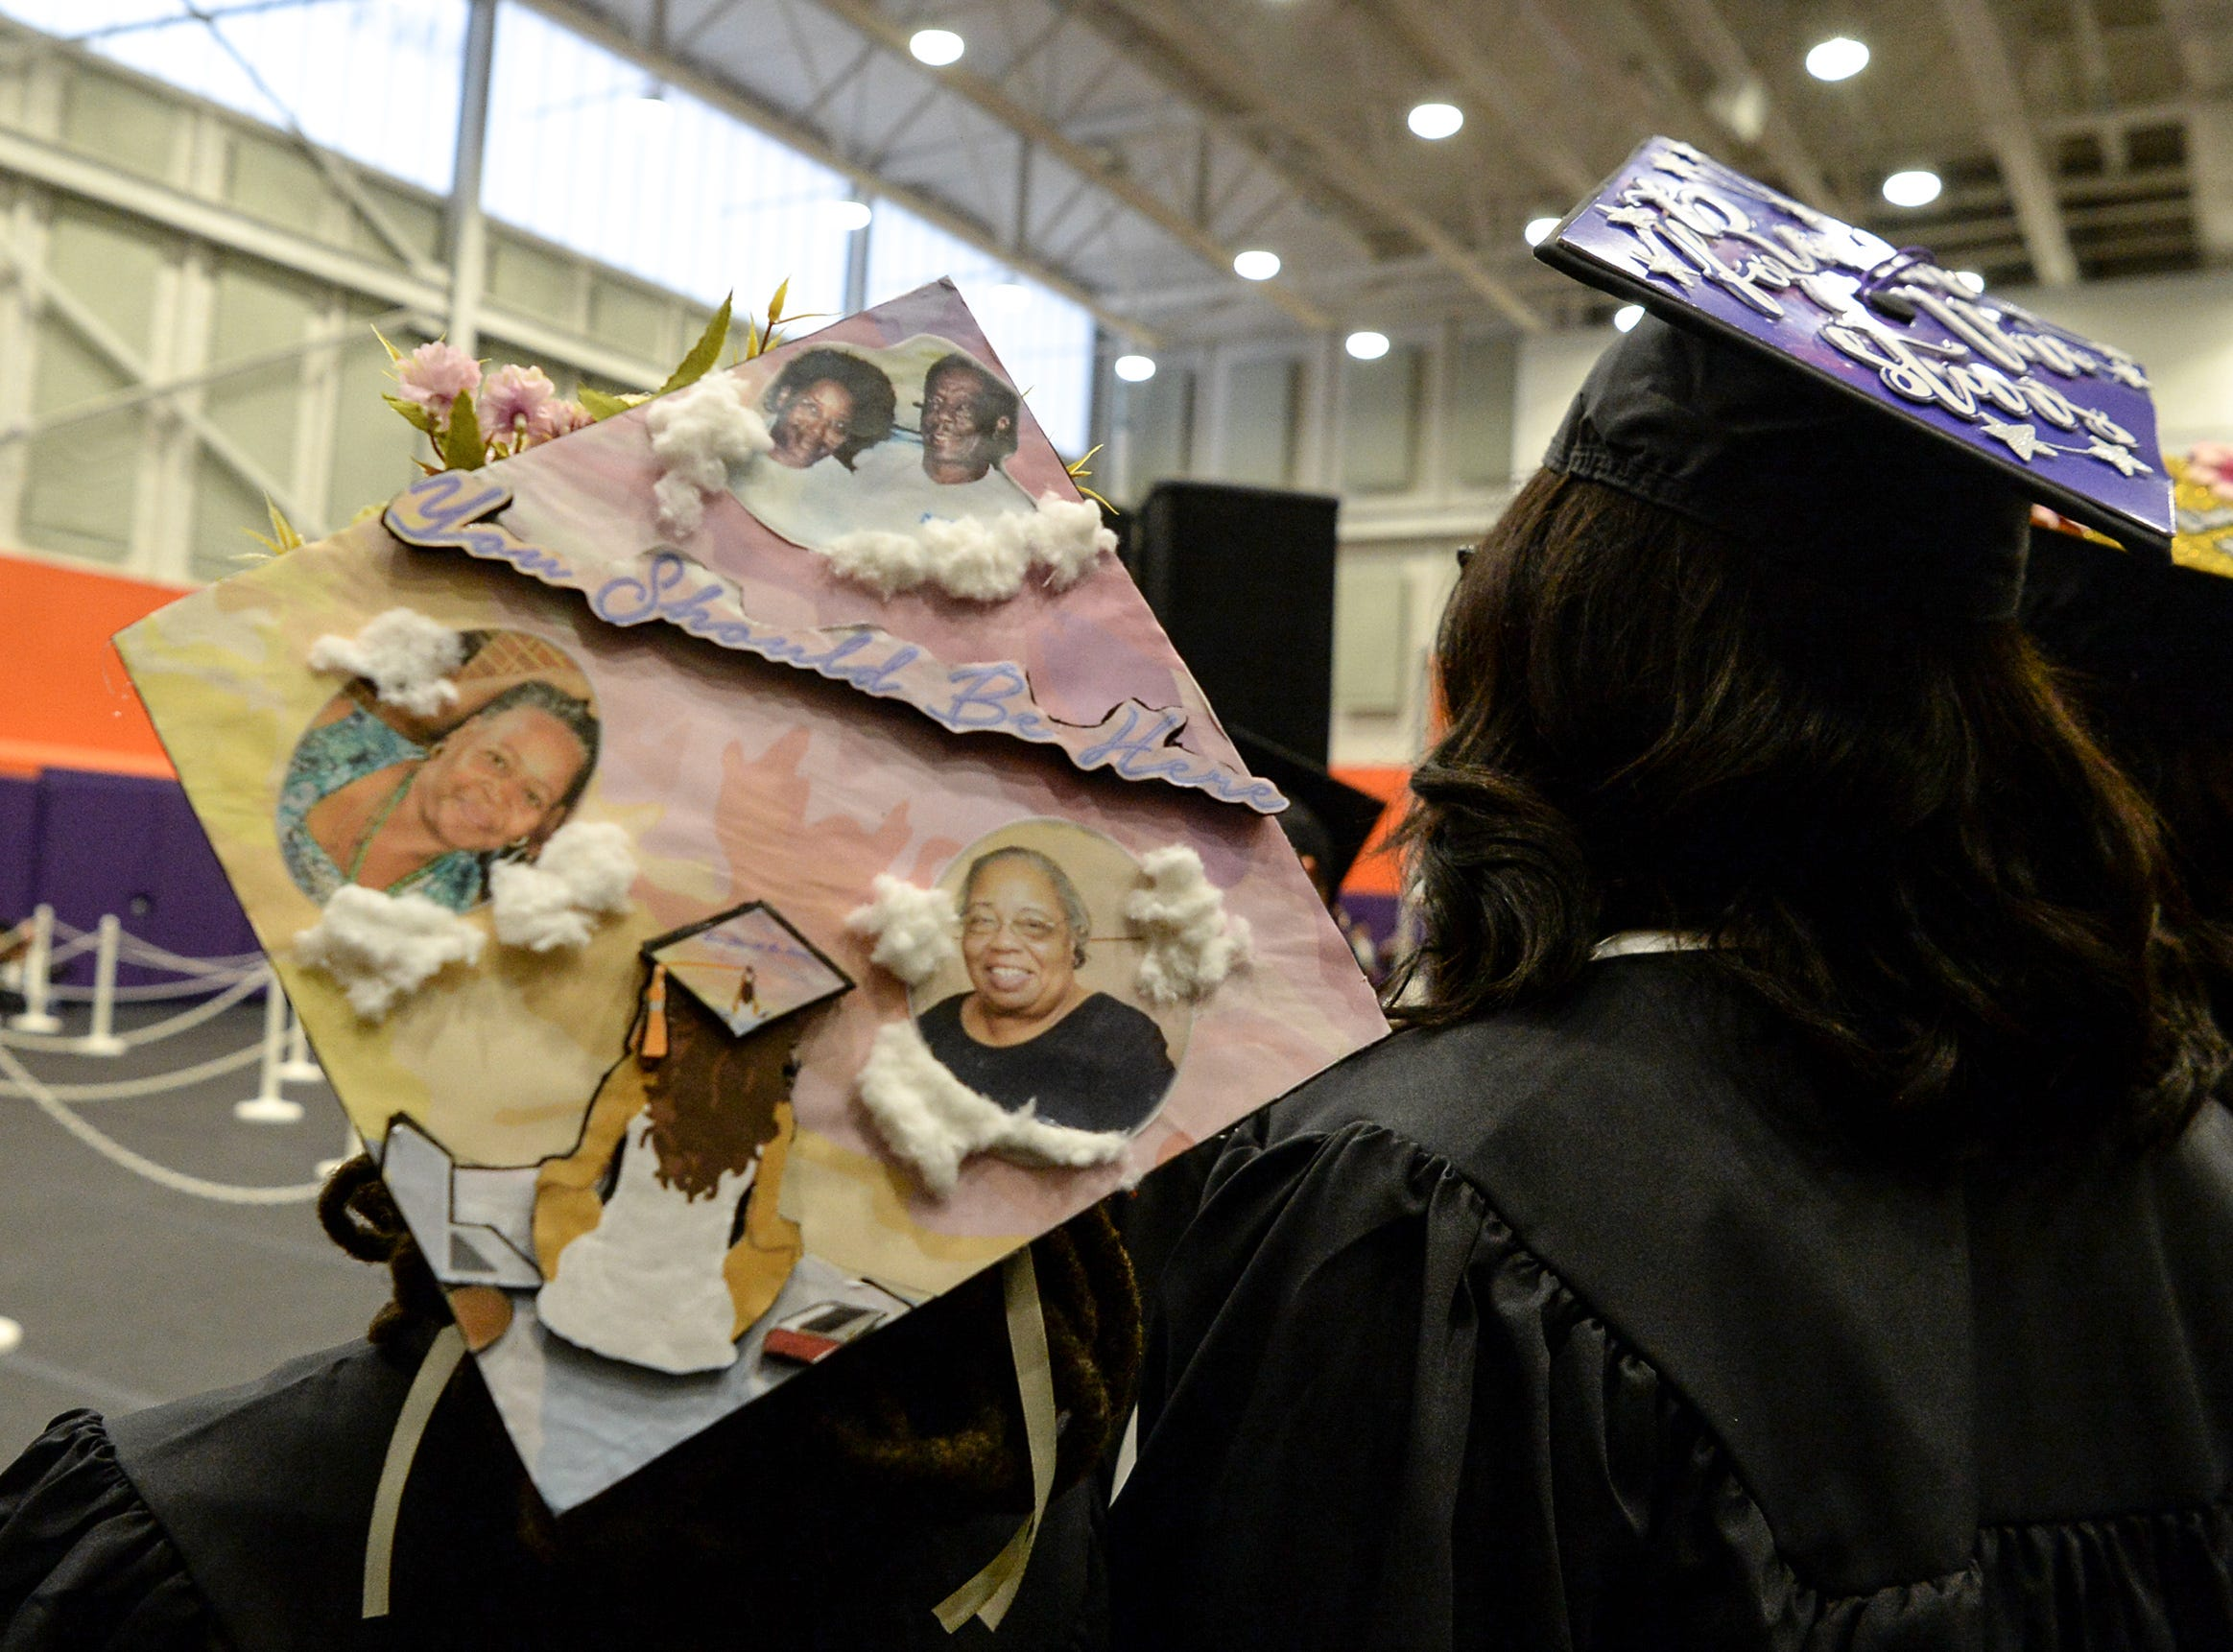 """Kendra Caldwell wears a cap with photos of late family members, during Clemson University commencement ceremonies in Littlejohn Coliseum in Clemson Friday, May 10, 2019. """"You should be here,"""" is written on the cap."""